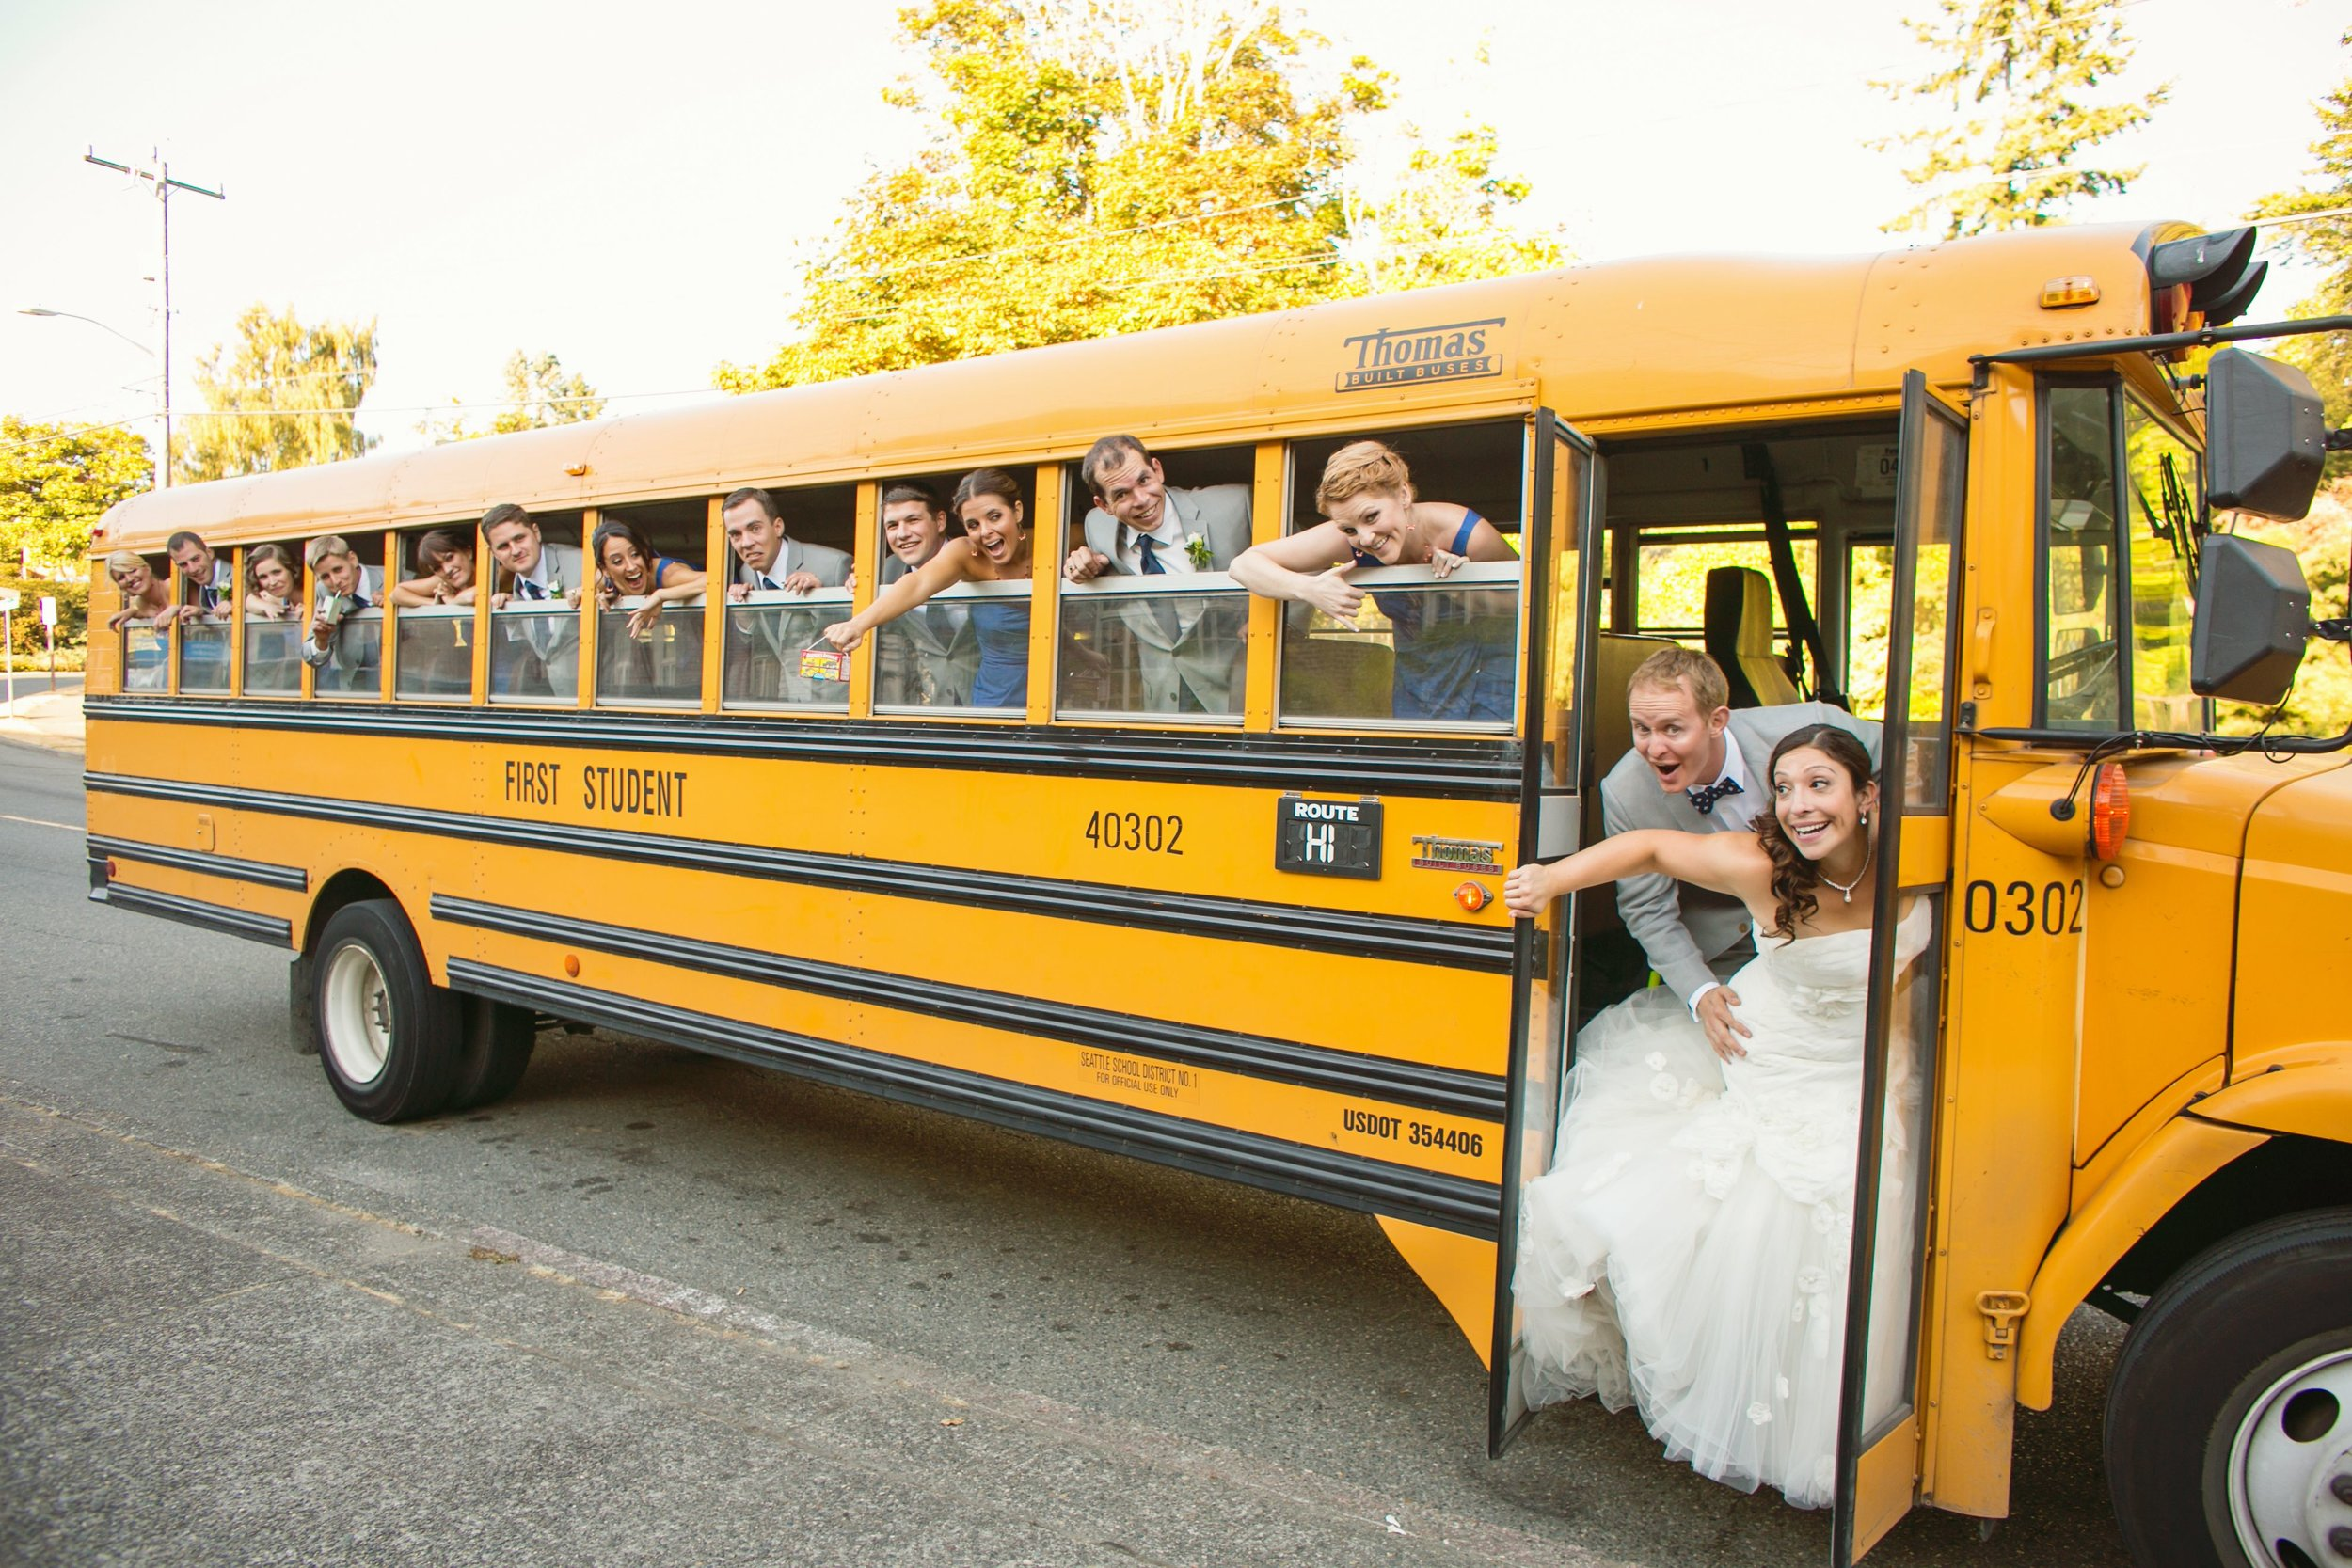 school-bus-rental-for-wedding.jpg